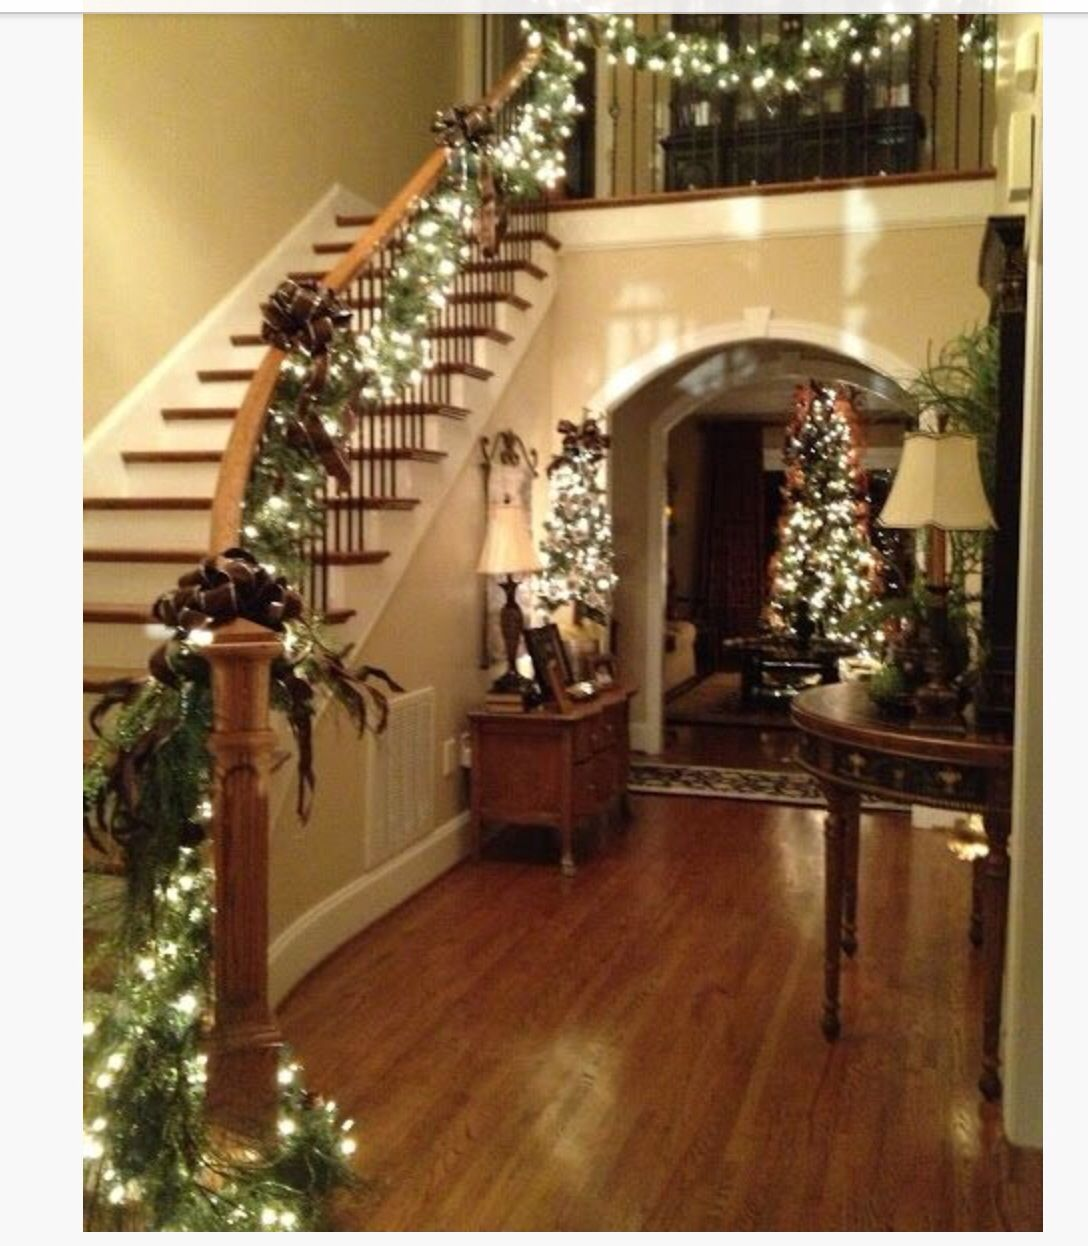 Garland With Lights And Decorations For The Railing On Stairs. I Love  Christmas Decorations And These Are Great With The House!